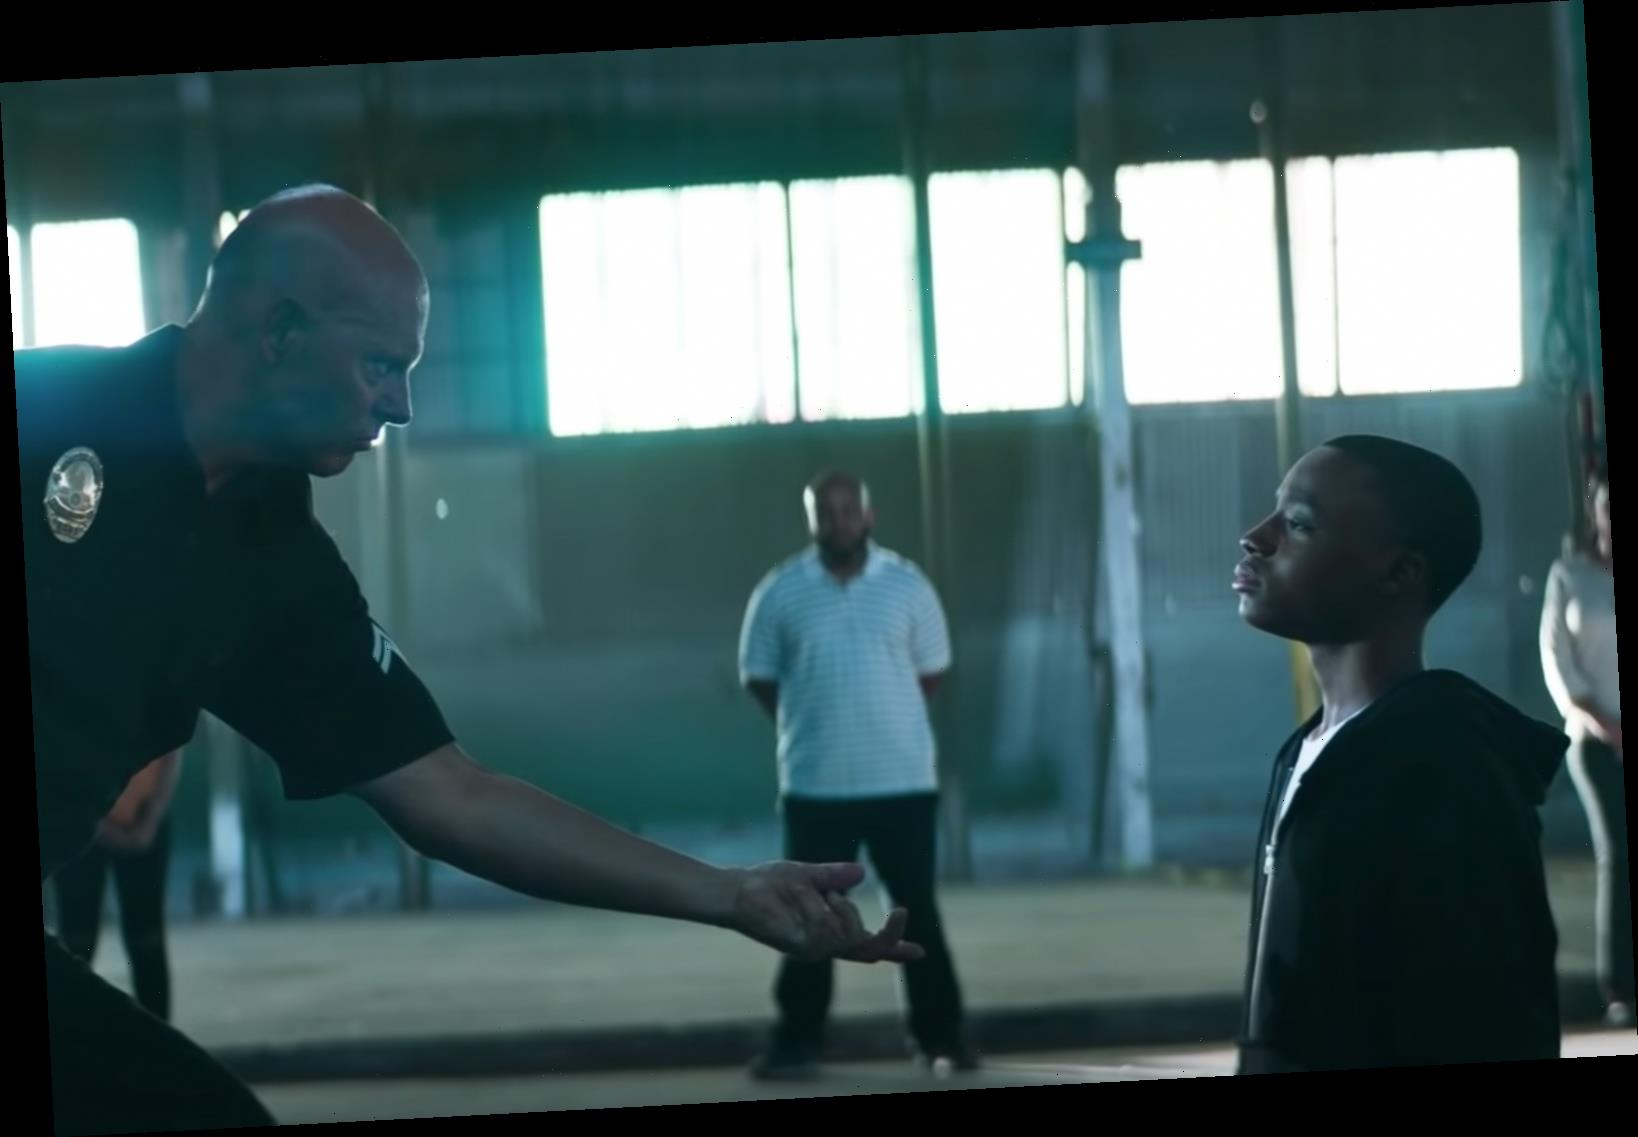 13-Year-Old Viral Star Keedron Bryant Confronts Police Brutality in New 'I Just Wanna Live' Video